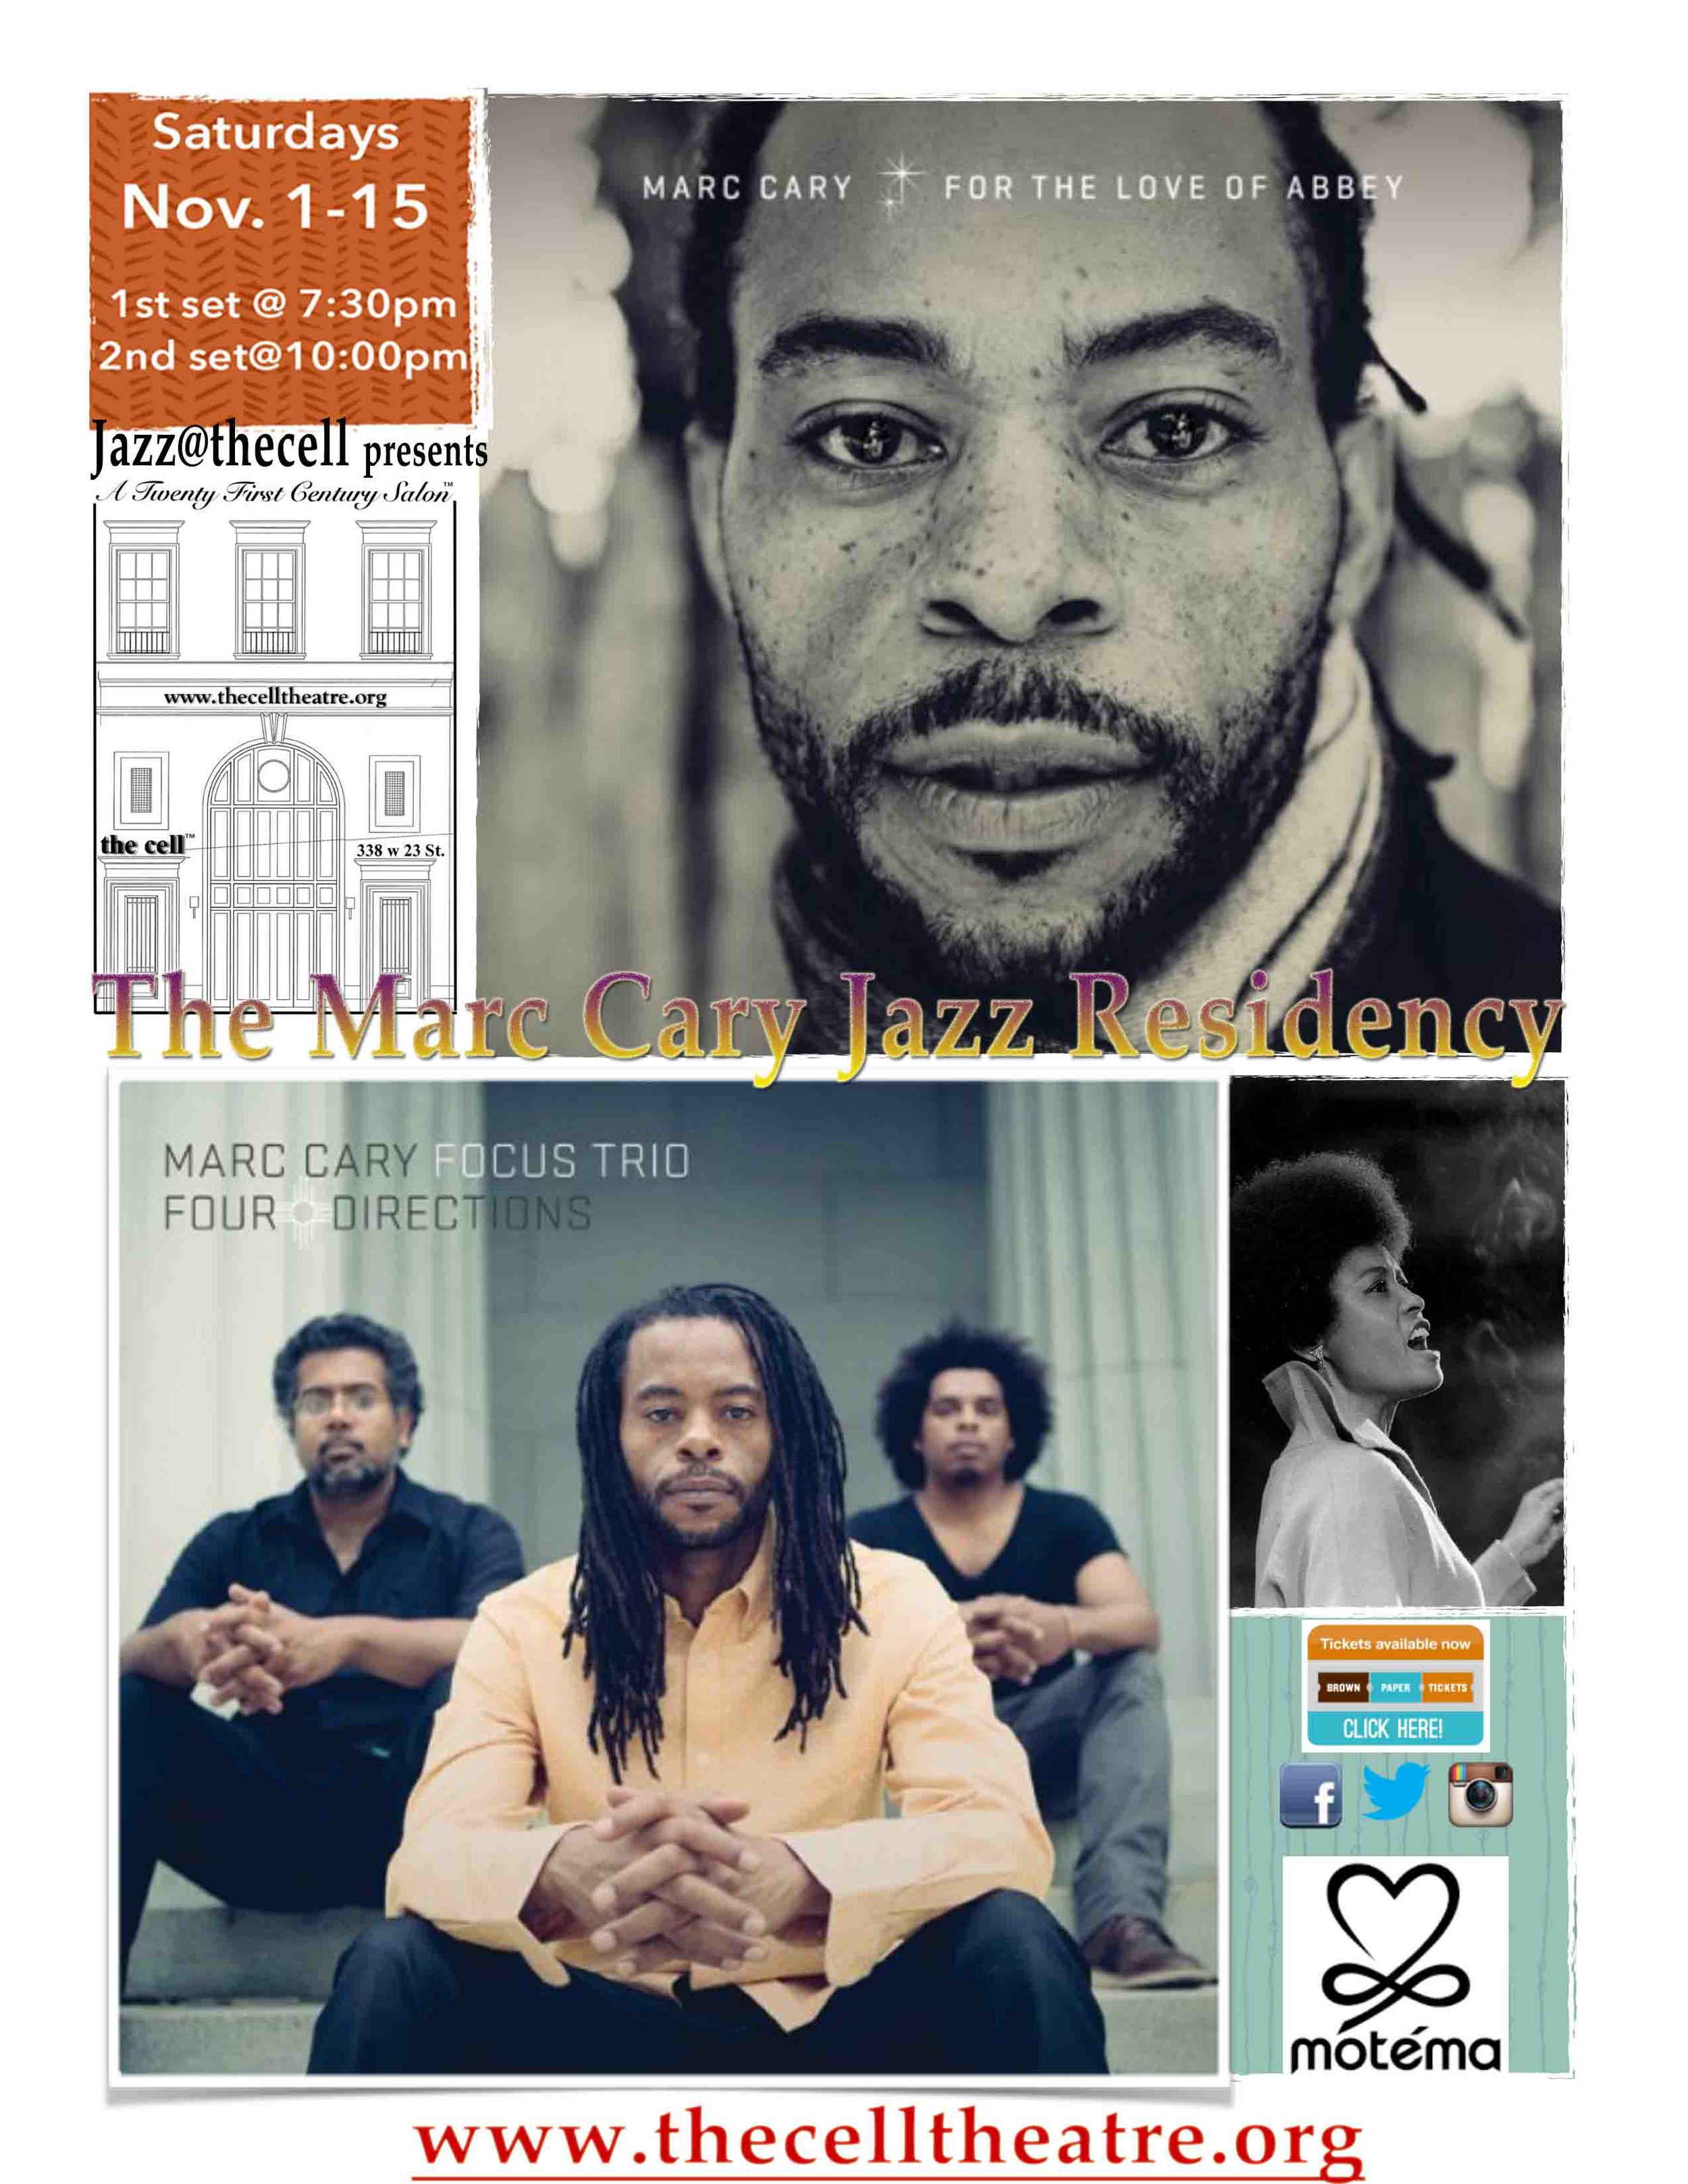 """Marc Cary: The Key Man– Jazz residency @the cell         Saturday Nov, 8      1st Set at 7:30 pm      2nd Set at 10:00 pm       Recently voted""""Rising Star"""" keyboardist    in Downbeat's 62nd annual Critic's Poll in 2014, pianist, keyboardist and composer, Marc Cary has become known as one of the best and most original jazz pianists in New York.He is a graduate of the rigorous bandstand academy long run by late vocalist Betty Carter,as well as a 12 years tenure accompanying Abbey Lincoln, and he plays with the big ears and vivid improvisational imagination that she required. As we enter into 2015, Marc Cary embarks upon celebrating 20 years as a lead recording artist as well as 10 years with indie jazzsensationMotema Music.    This 3 night residency will celebrate along and diverse recording career, anchored by Focus Trio and joined by some very special friends.       Saturdays 1st and 8th November          1st set 7:30 pm - Marc Cary Focus Trio: A celebration of Abbey Lincoln         2nd set 10:00 pm - Focus Trio  with special guests Pyeng Threadgill and Latosha Diggs         Saturday 15th November       Focus Trio and friends - covering material from Marc's 20 year recording career        1st Set 7:30 pm - A Marc Cary Retrospective Part I      2nd Set 10:00 pm - A Marc Cary Retrospective Part II     featuring Focus Trio , Rhodes Ahead , Indigenous People"""